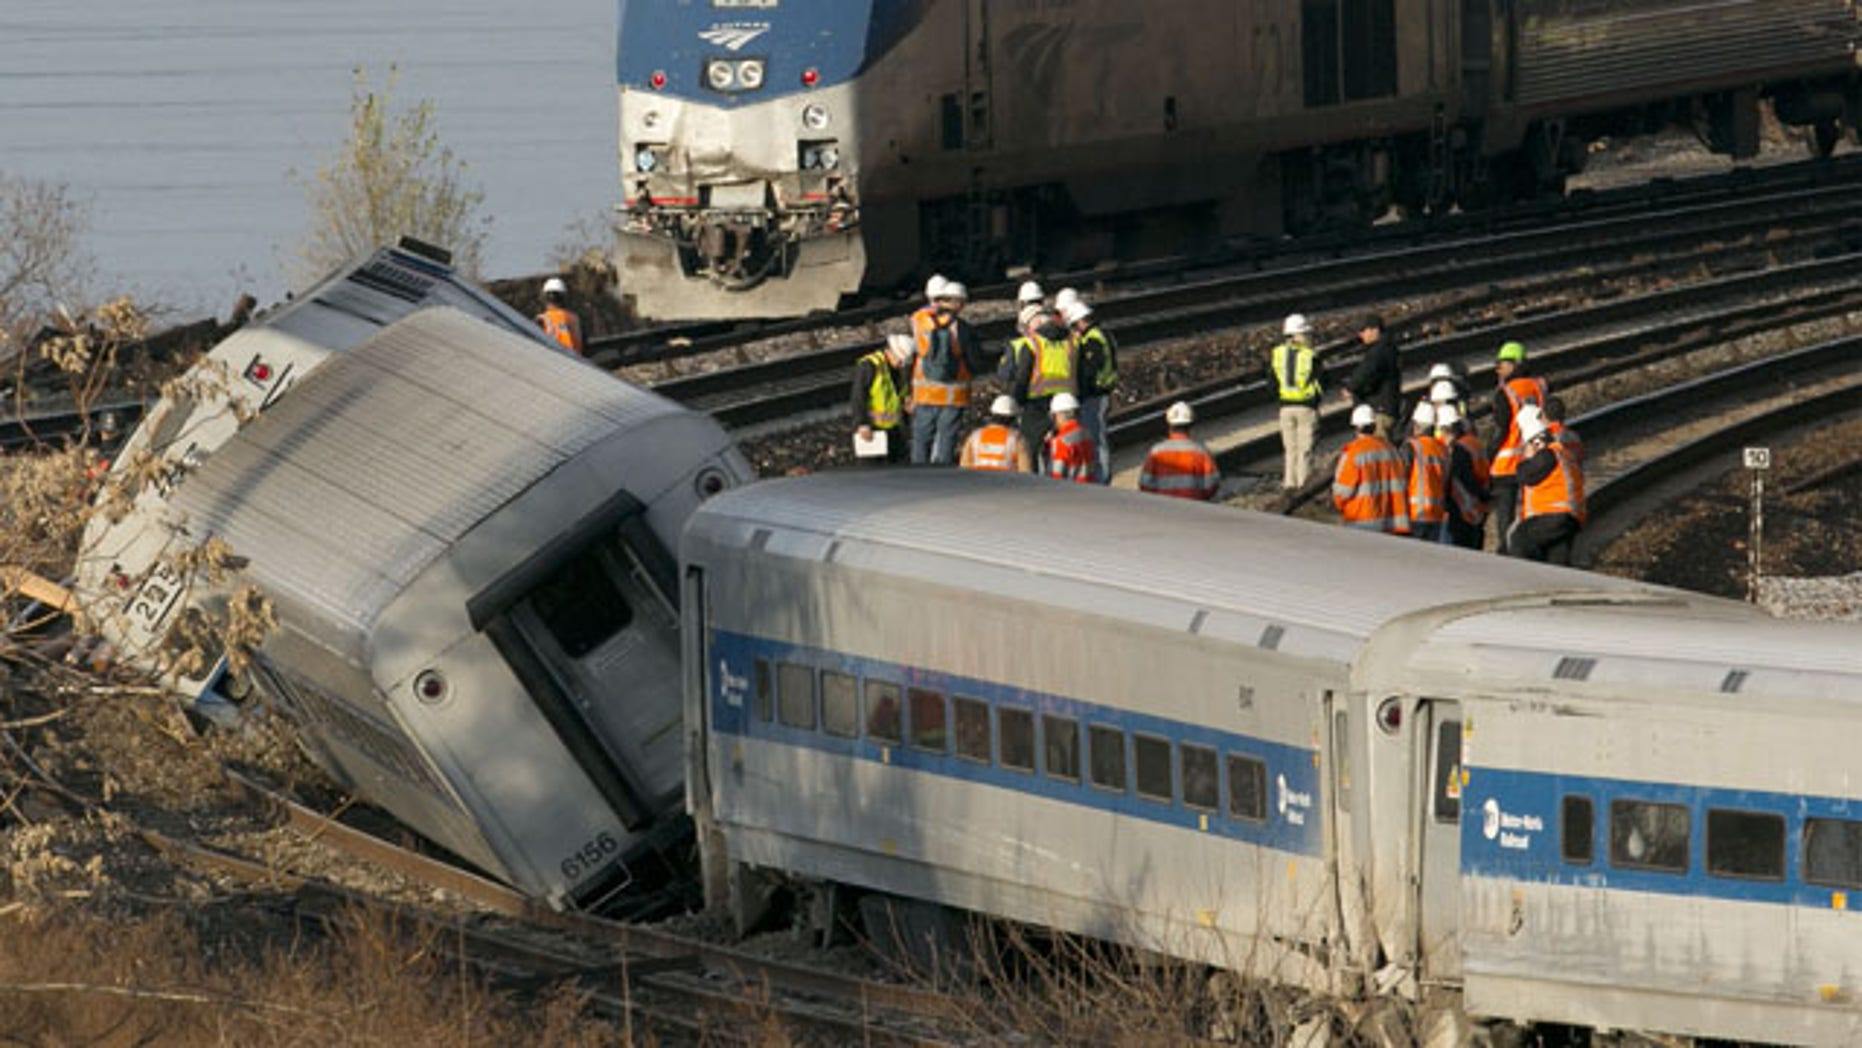 FILE - In this Dec. 1, 2013 file photo, an Amtrak train, top, traveling on an unaffected track, passes a derailed Metro North commuter train in the Bronx borough of New York. (AP Photo)